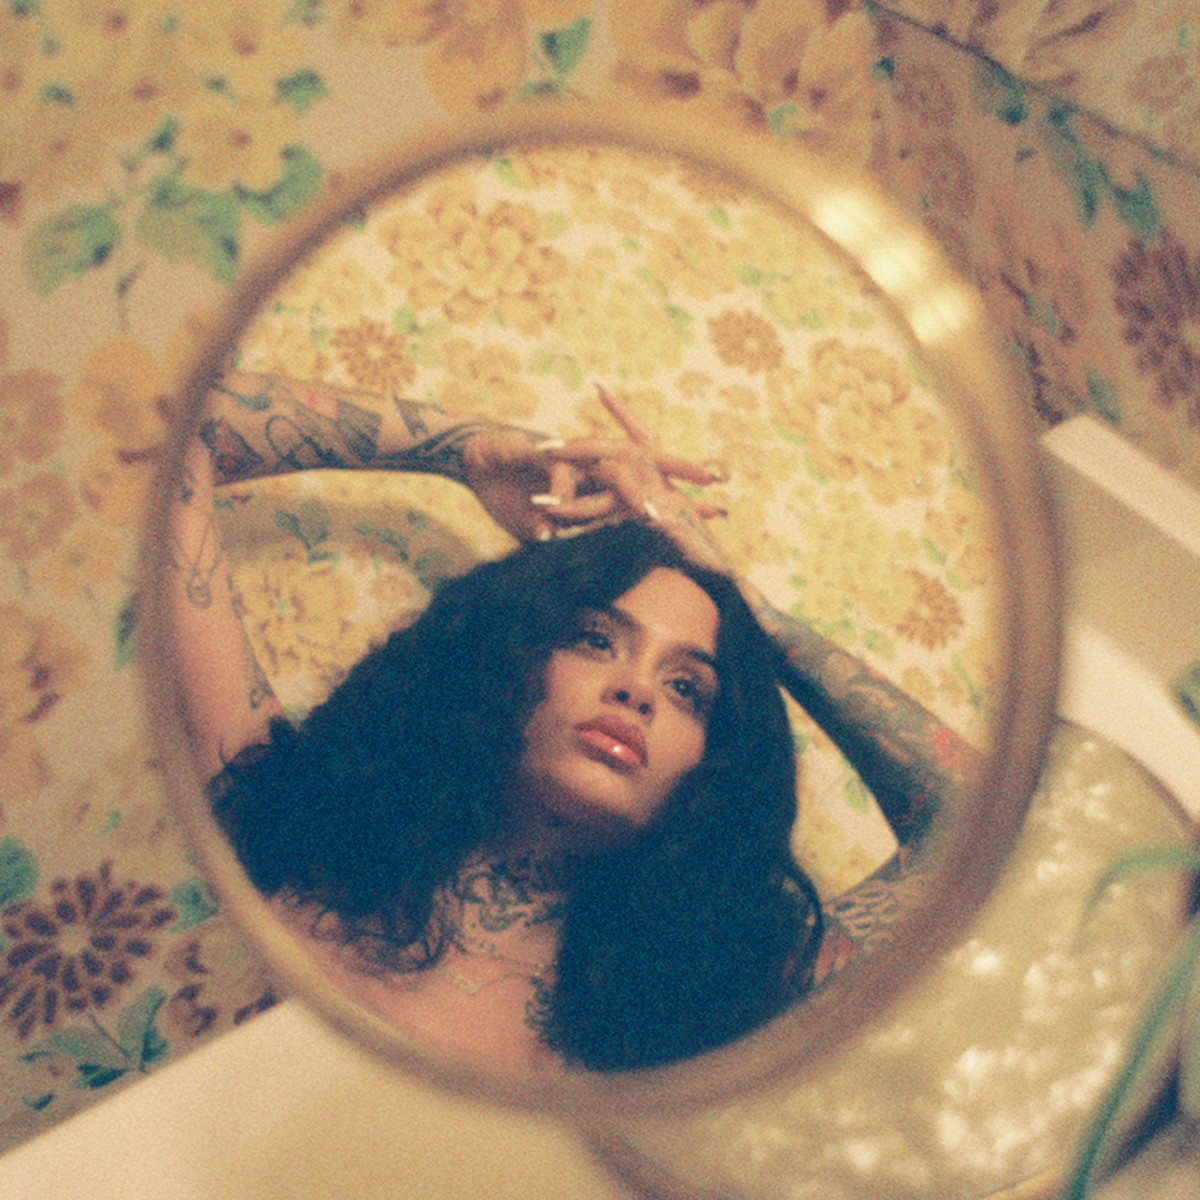 Kehlani 'While We Wait'